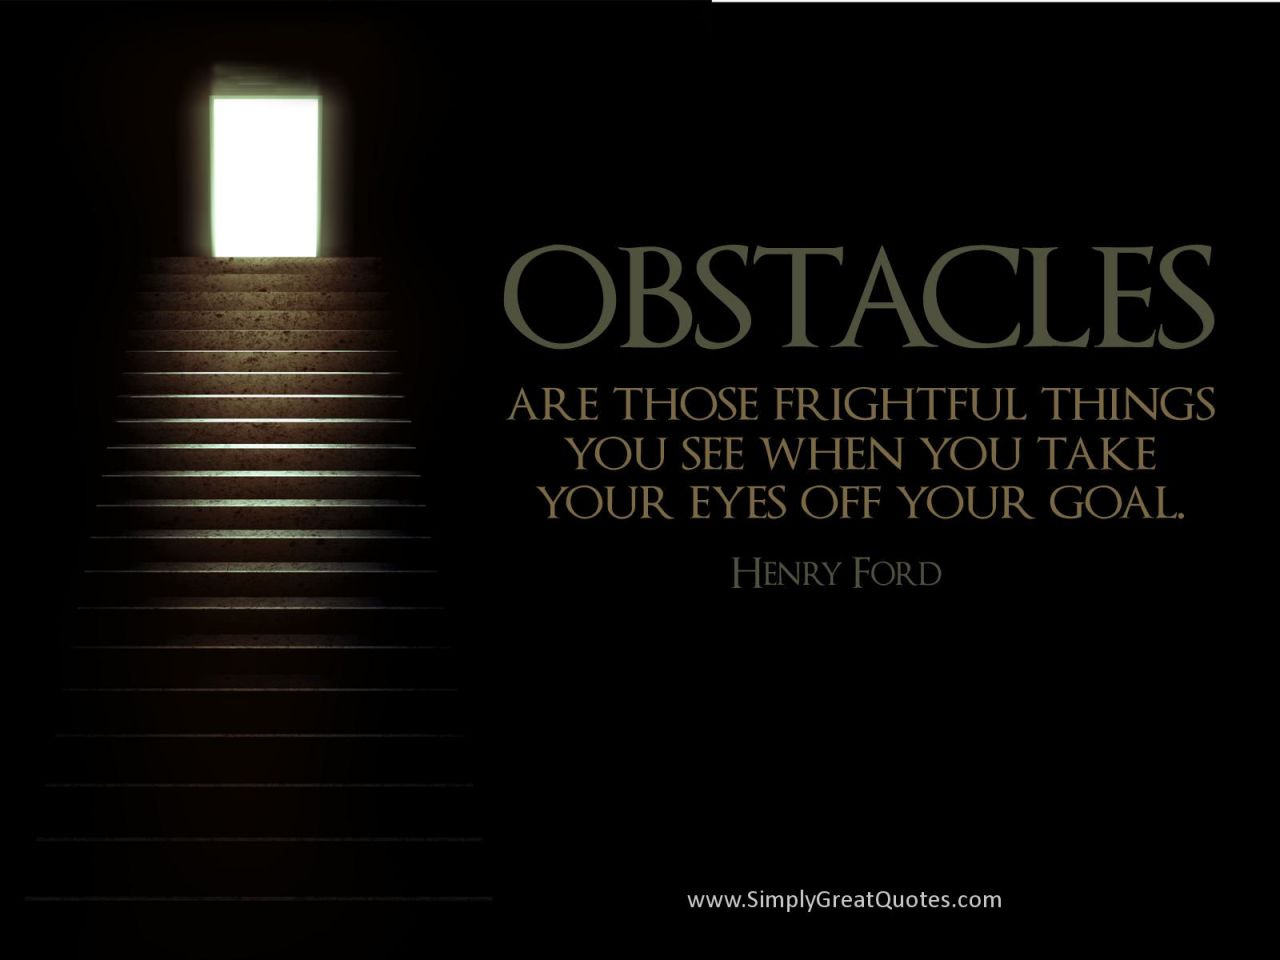 life obstacles quotes and sayings